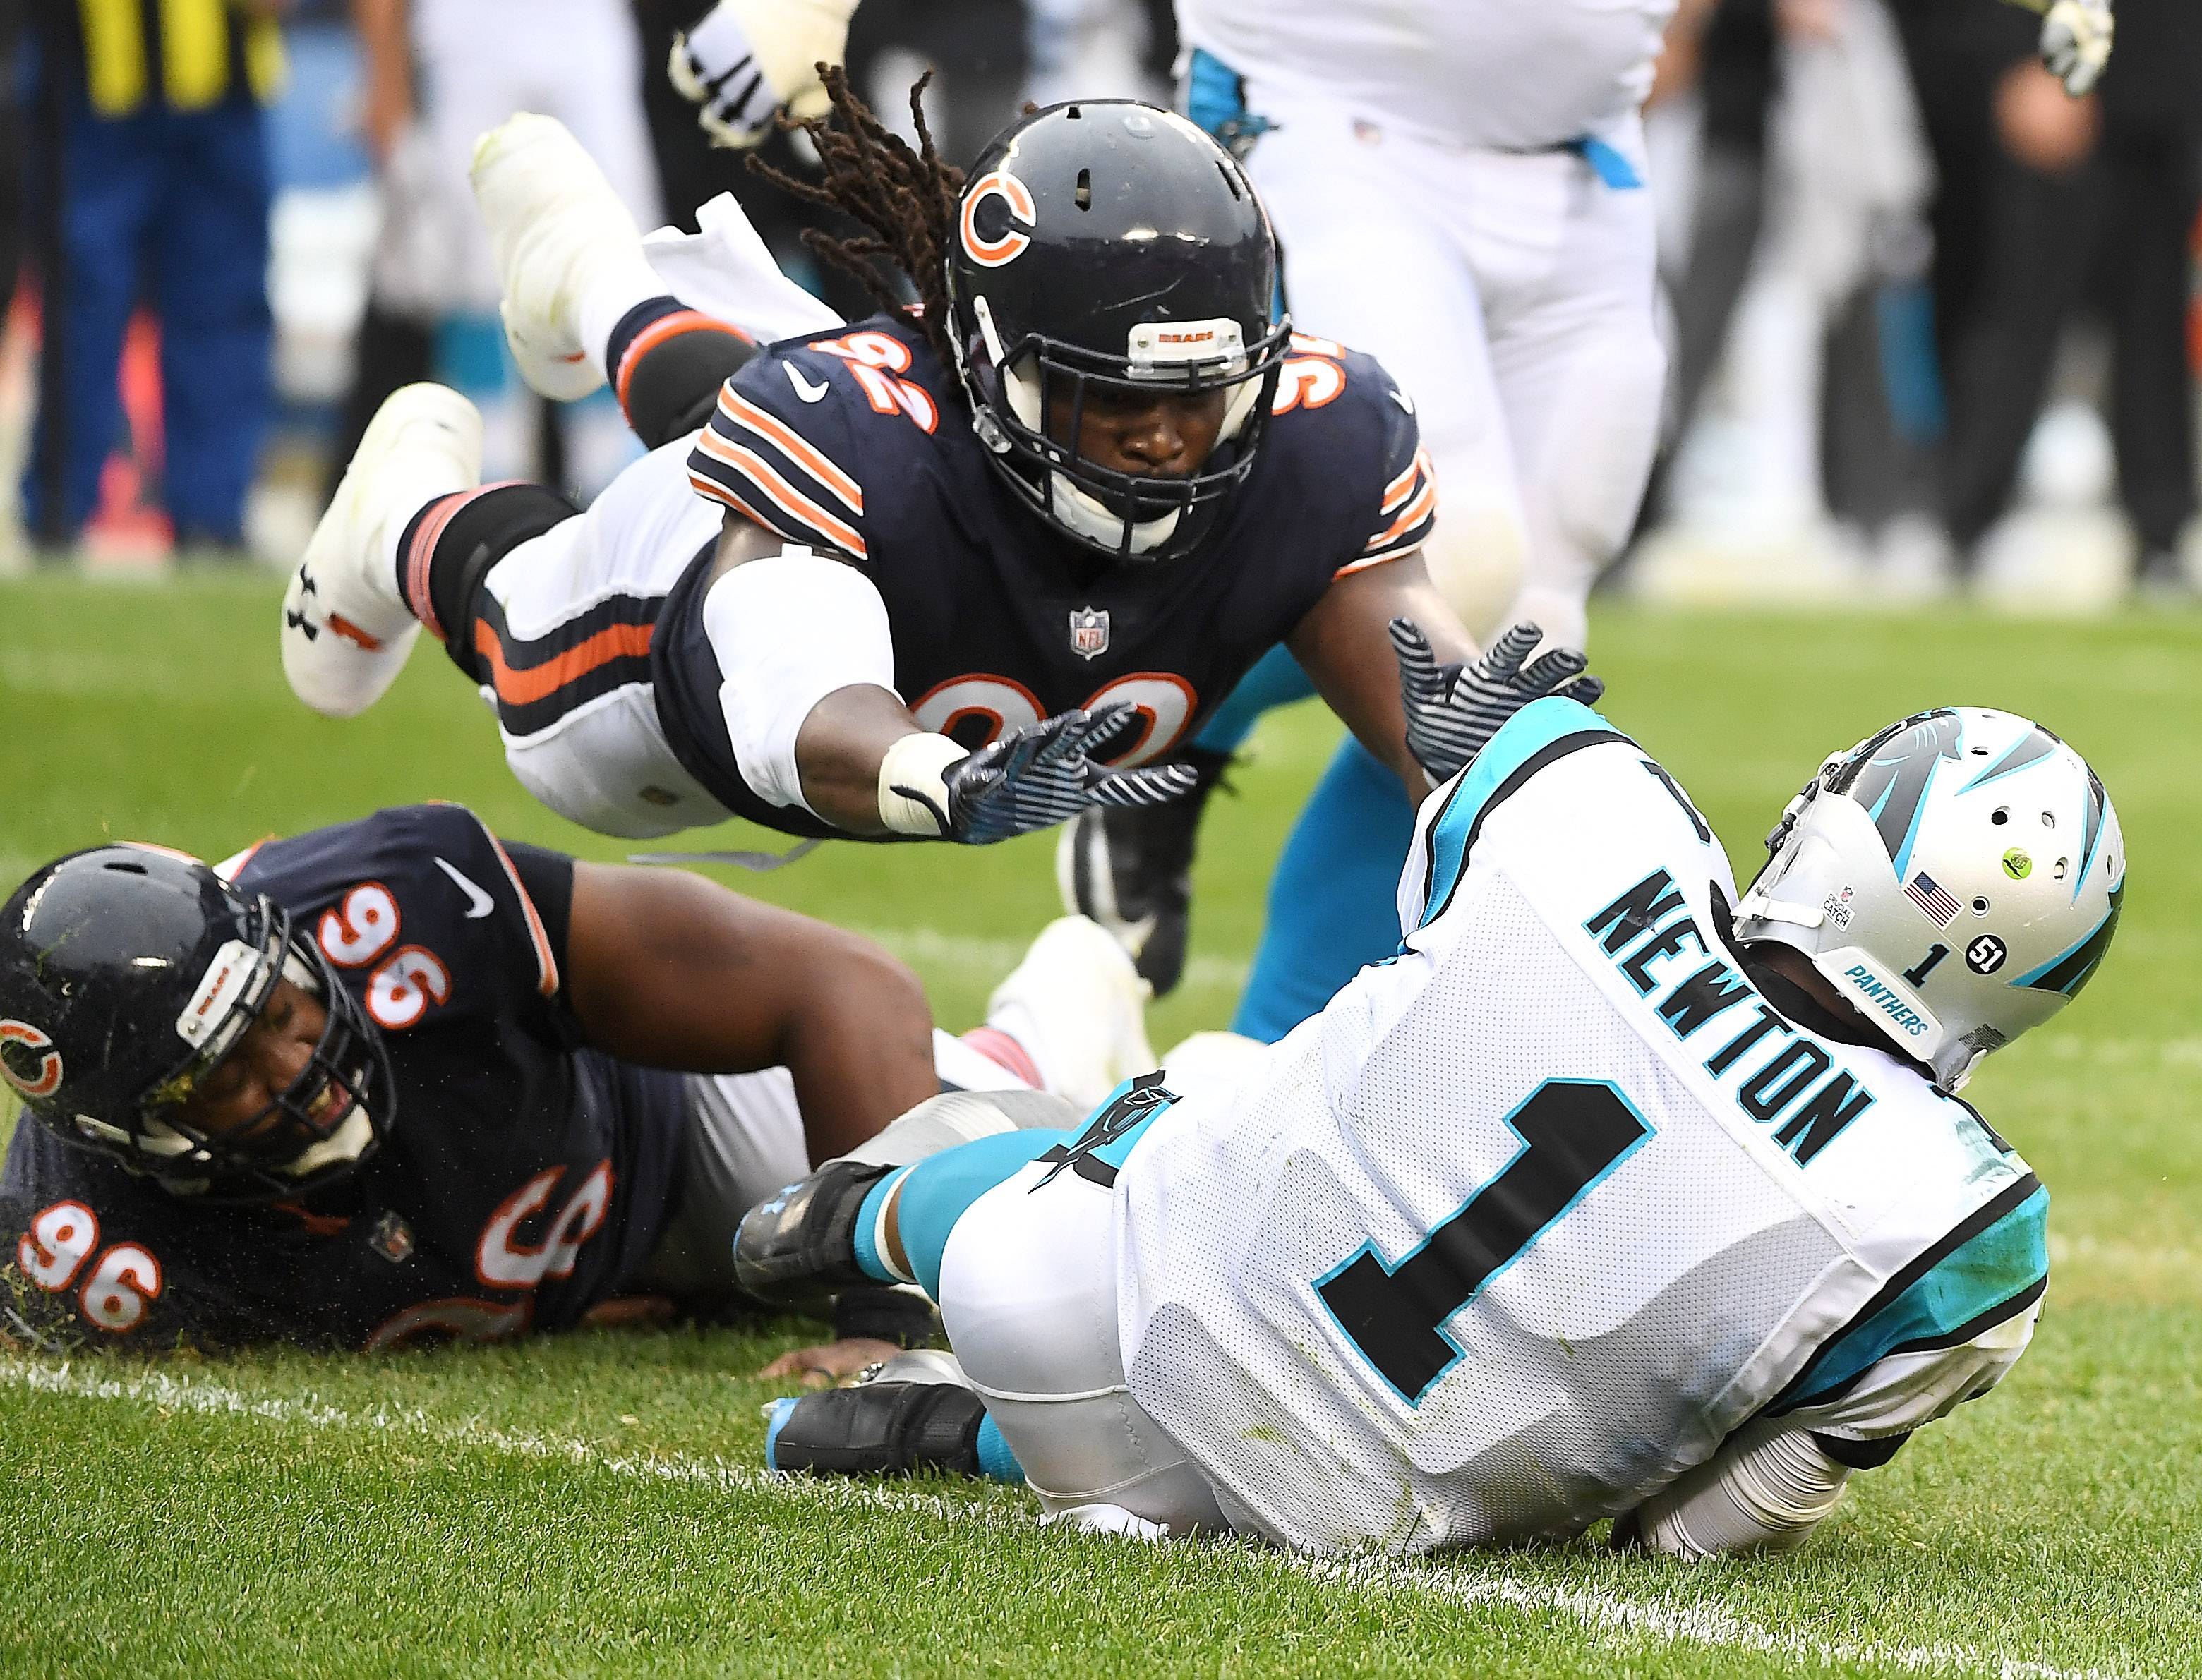 Chicago Bears outside linebacker Pernell McPhee flies over teammate Akiem Hicks to land on Carolina Panthers quarterback Cam Newton during Sunday's game at Soldier Field in Chicago.